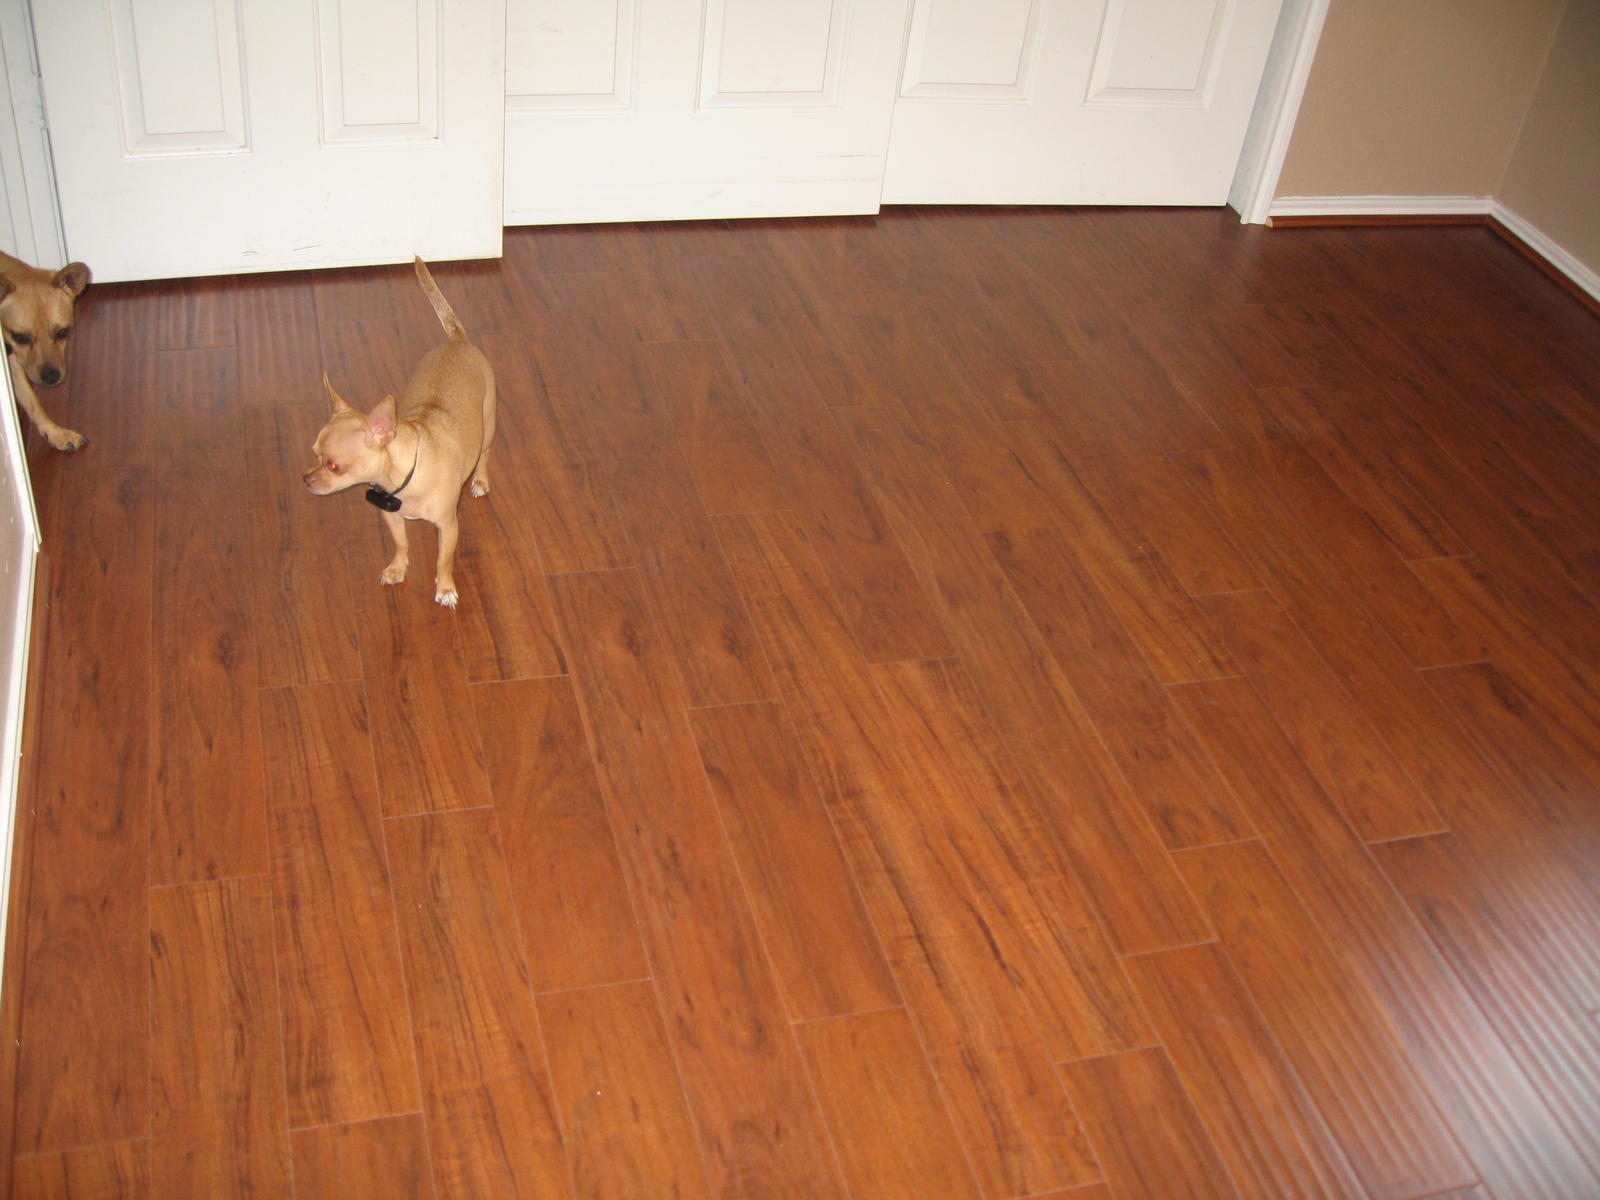 Cost For Hardwood Floor Install In Sa Img 1851 Jpg